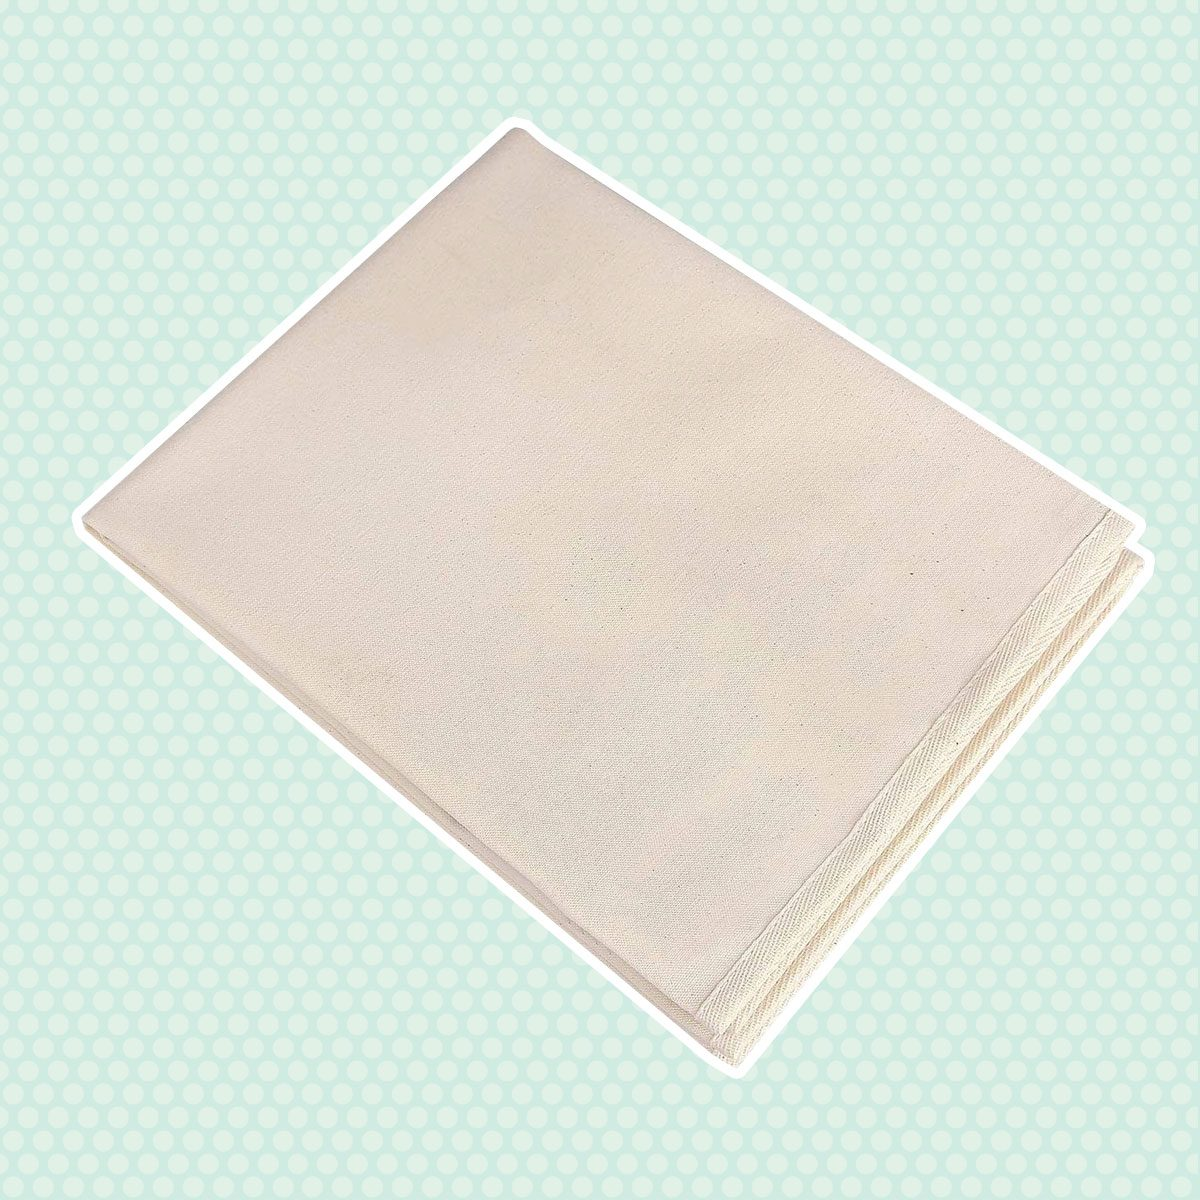 Orblue Baker's Couche and Proofing Cloth